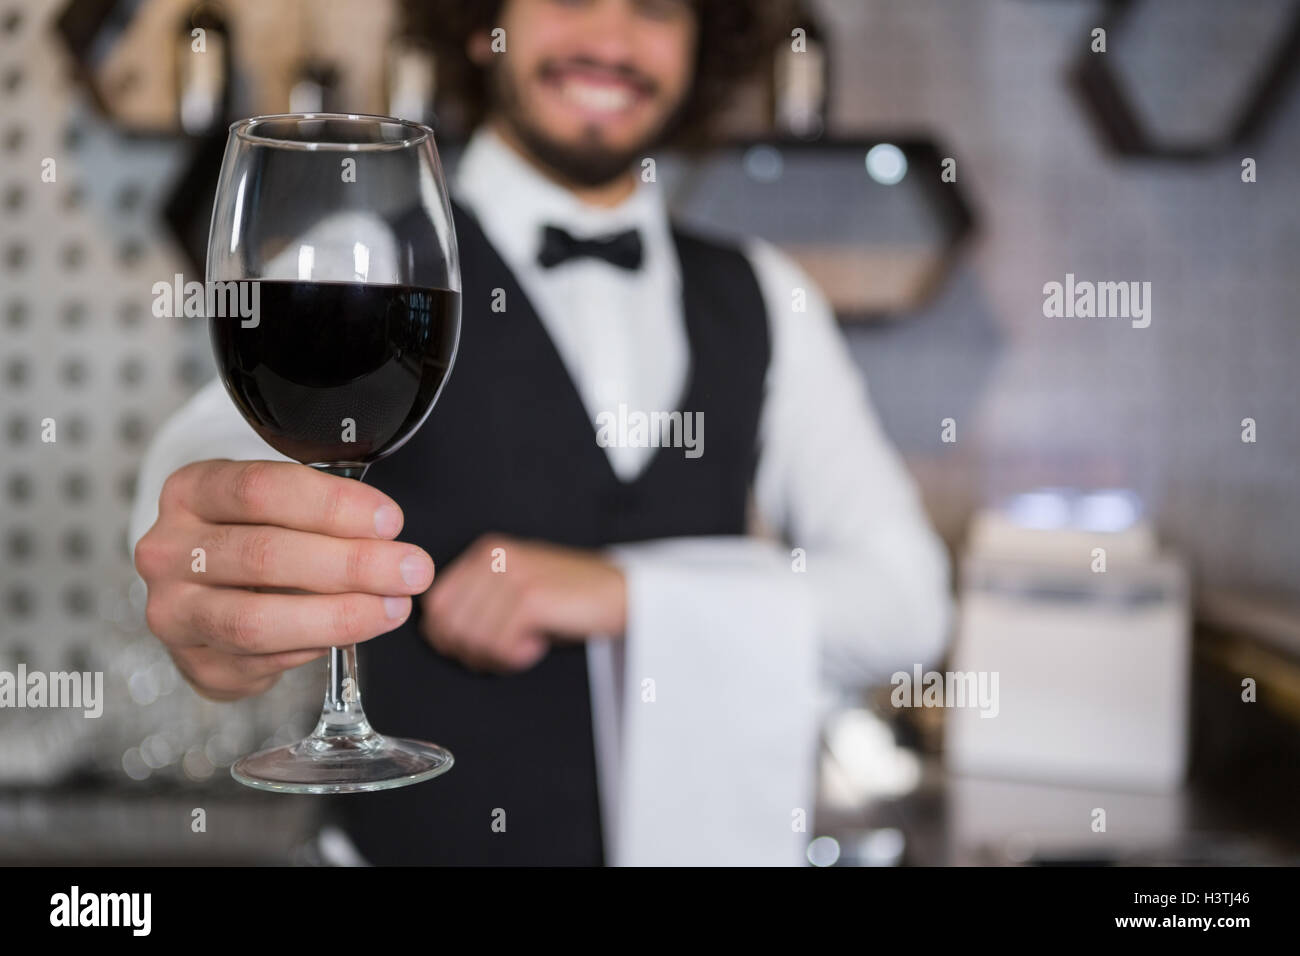 Waiter Serving Red Wine In Stockfotos & Waiter Serving Red Wine In ...